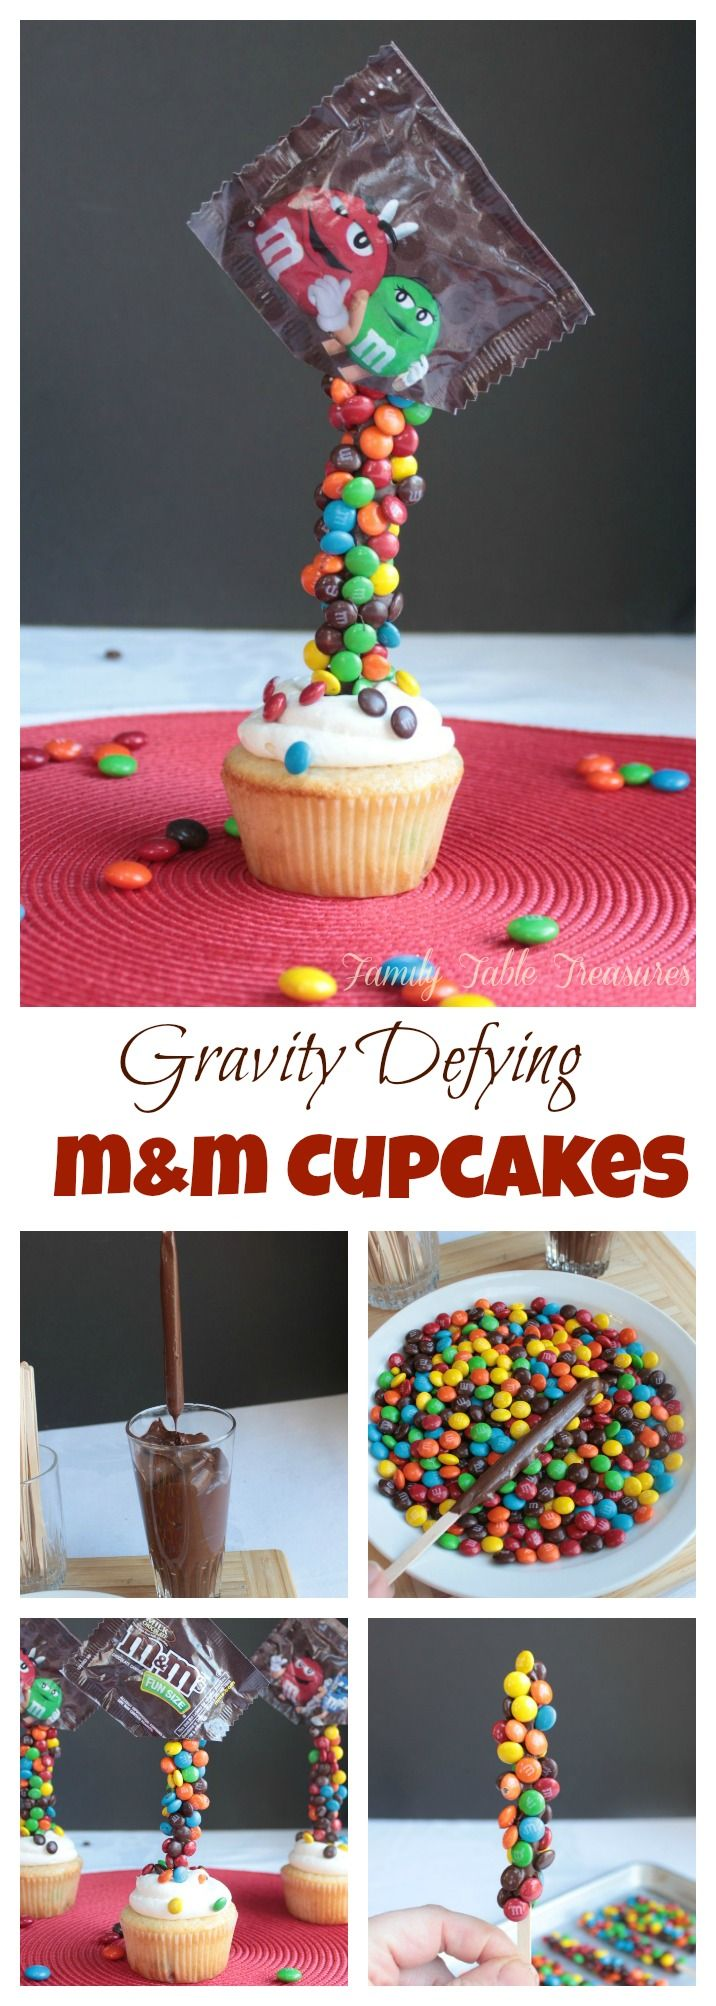 Gravity Defying M&M Cupcakes                                                                                                                                                                                 More